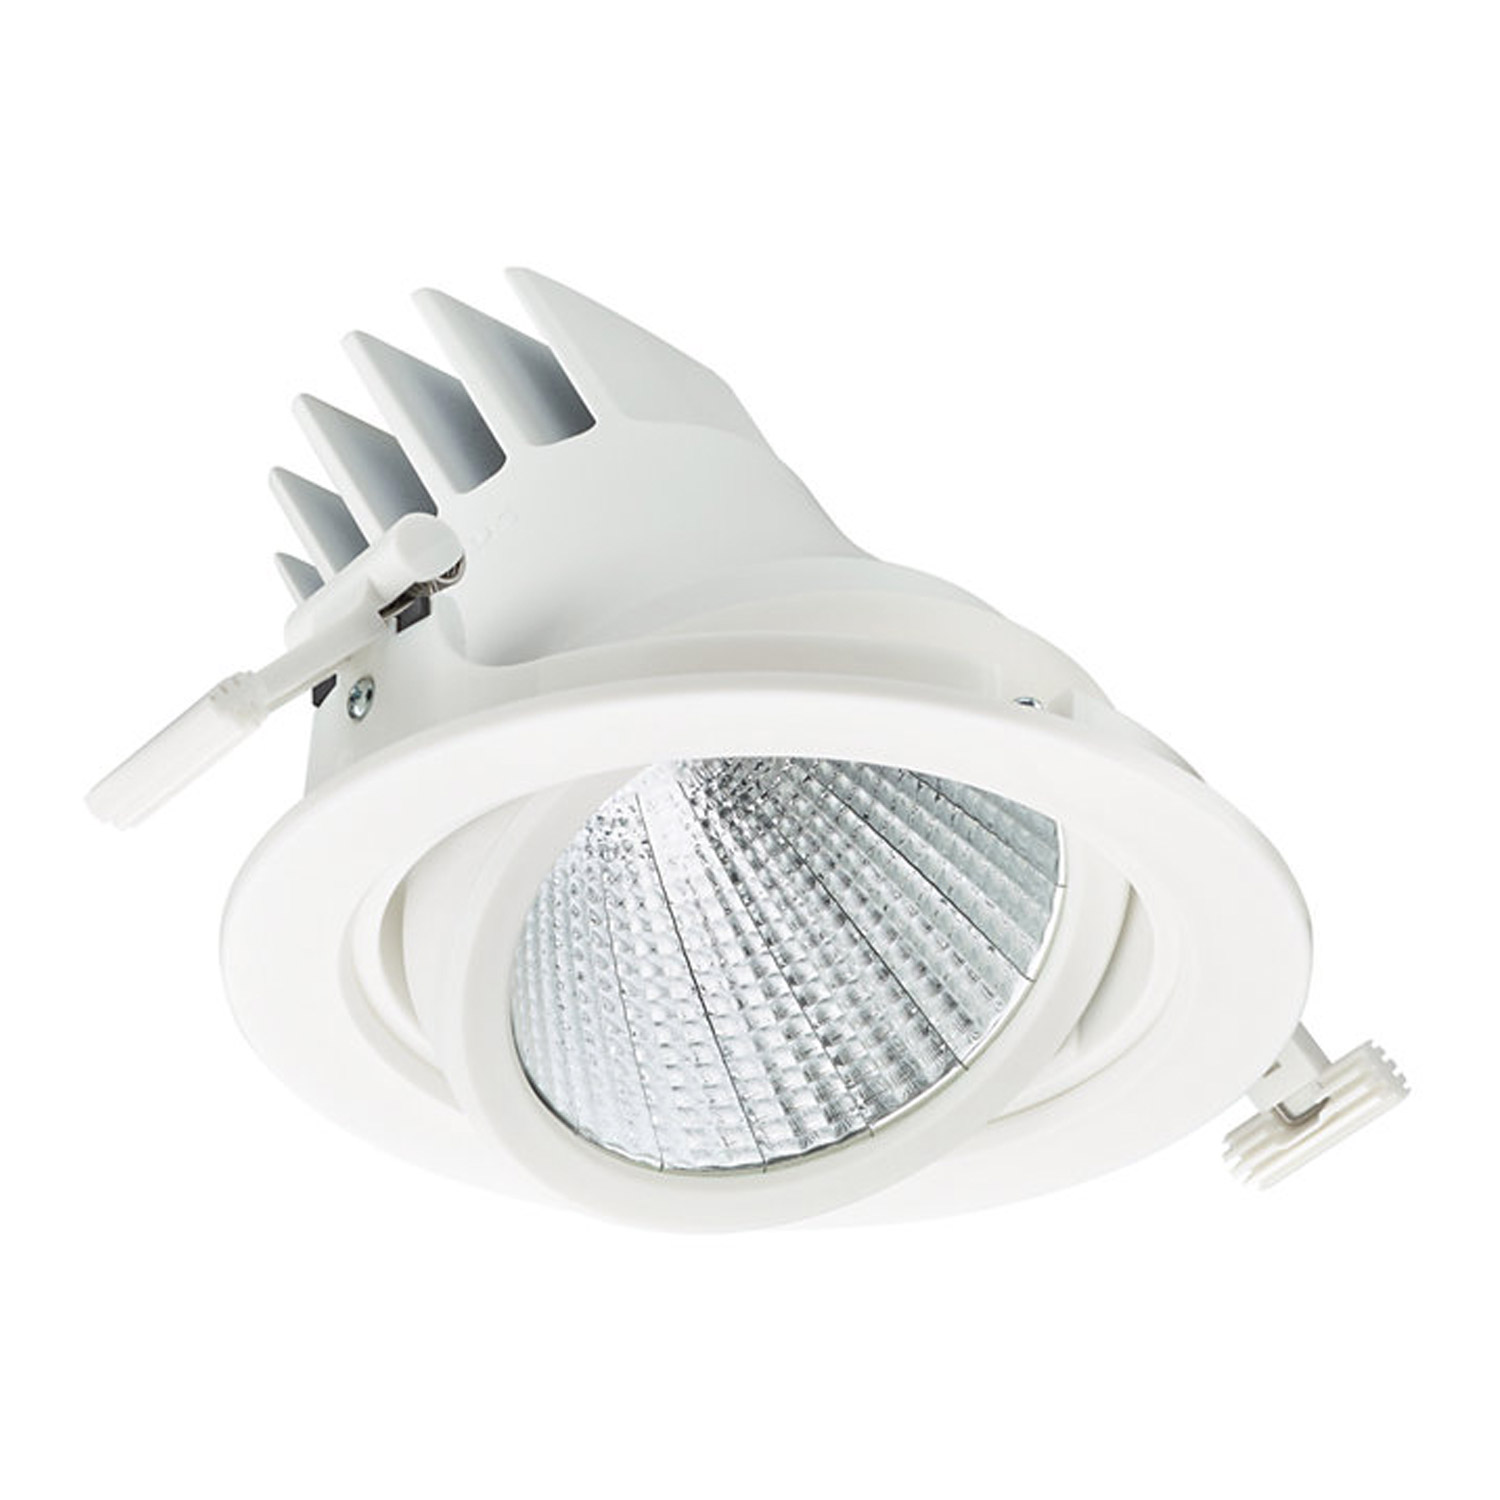 Philips LuxSpace Accent Performance LED Spot RS781B 38.5W 830 4900lm - Warm White